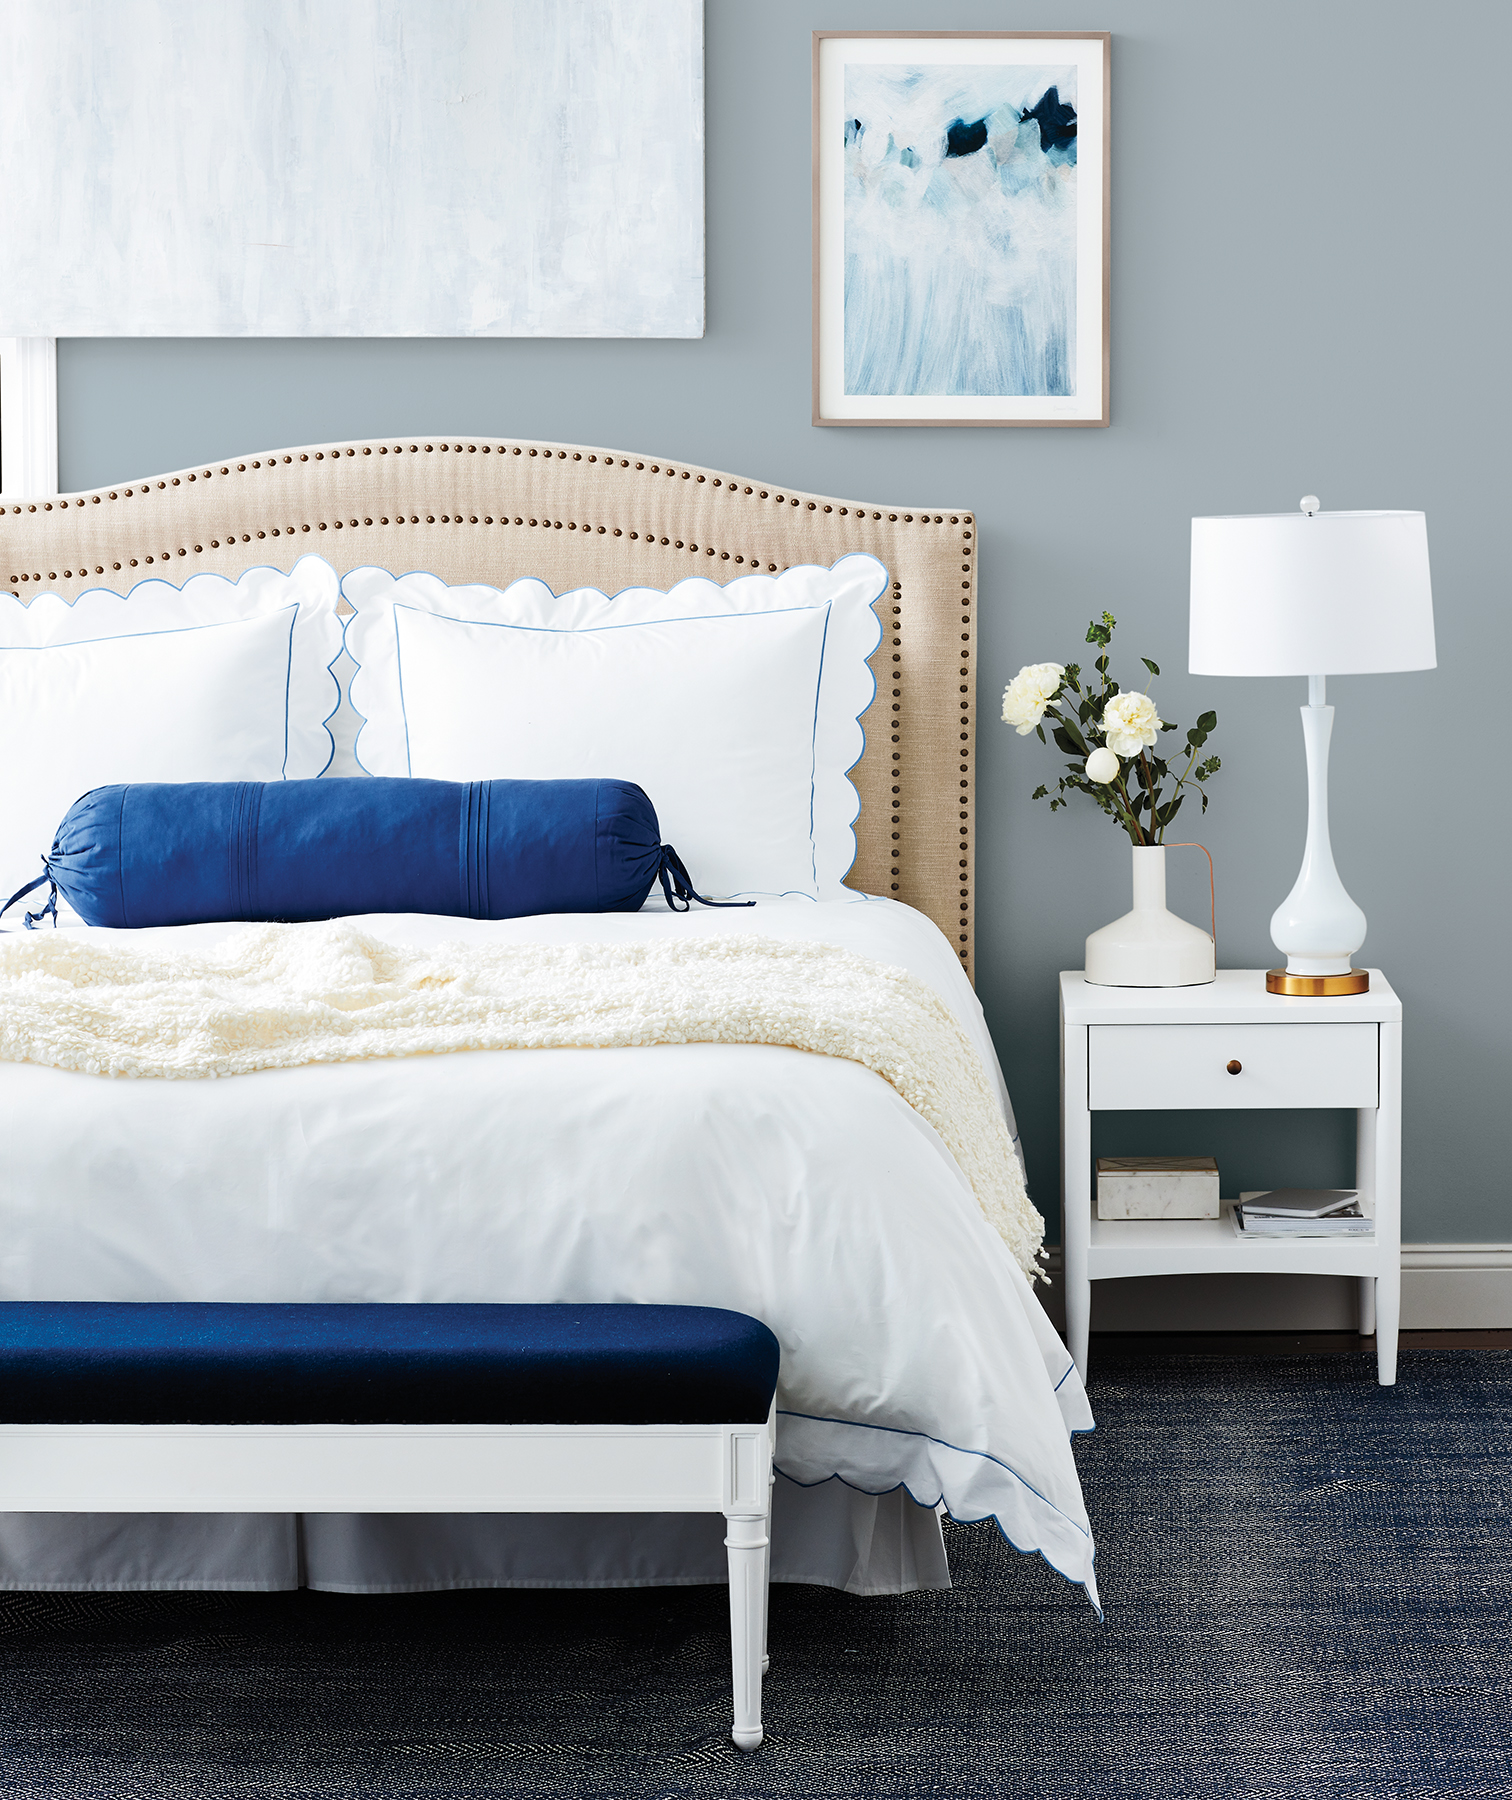 Classic bedroom in grays, blues, whites